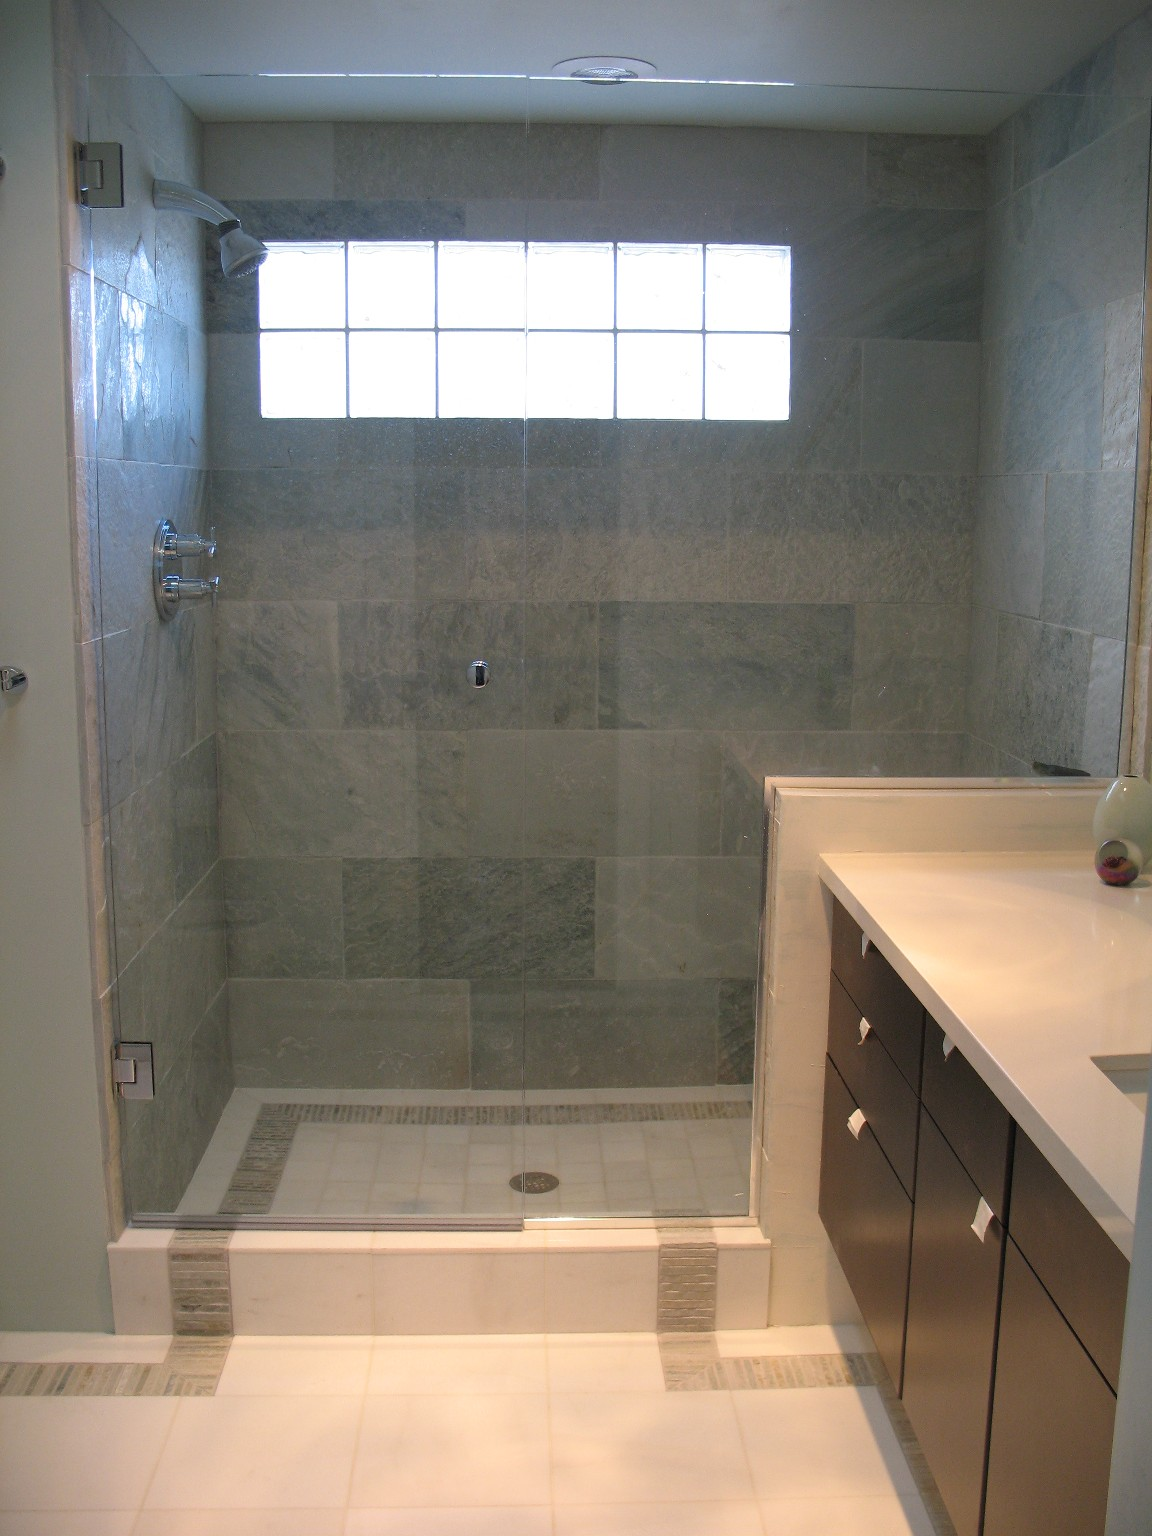 Bathroom Design Shower Over Bath : Amazing ideas and pictures of modern bathroom shower